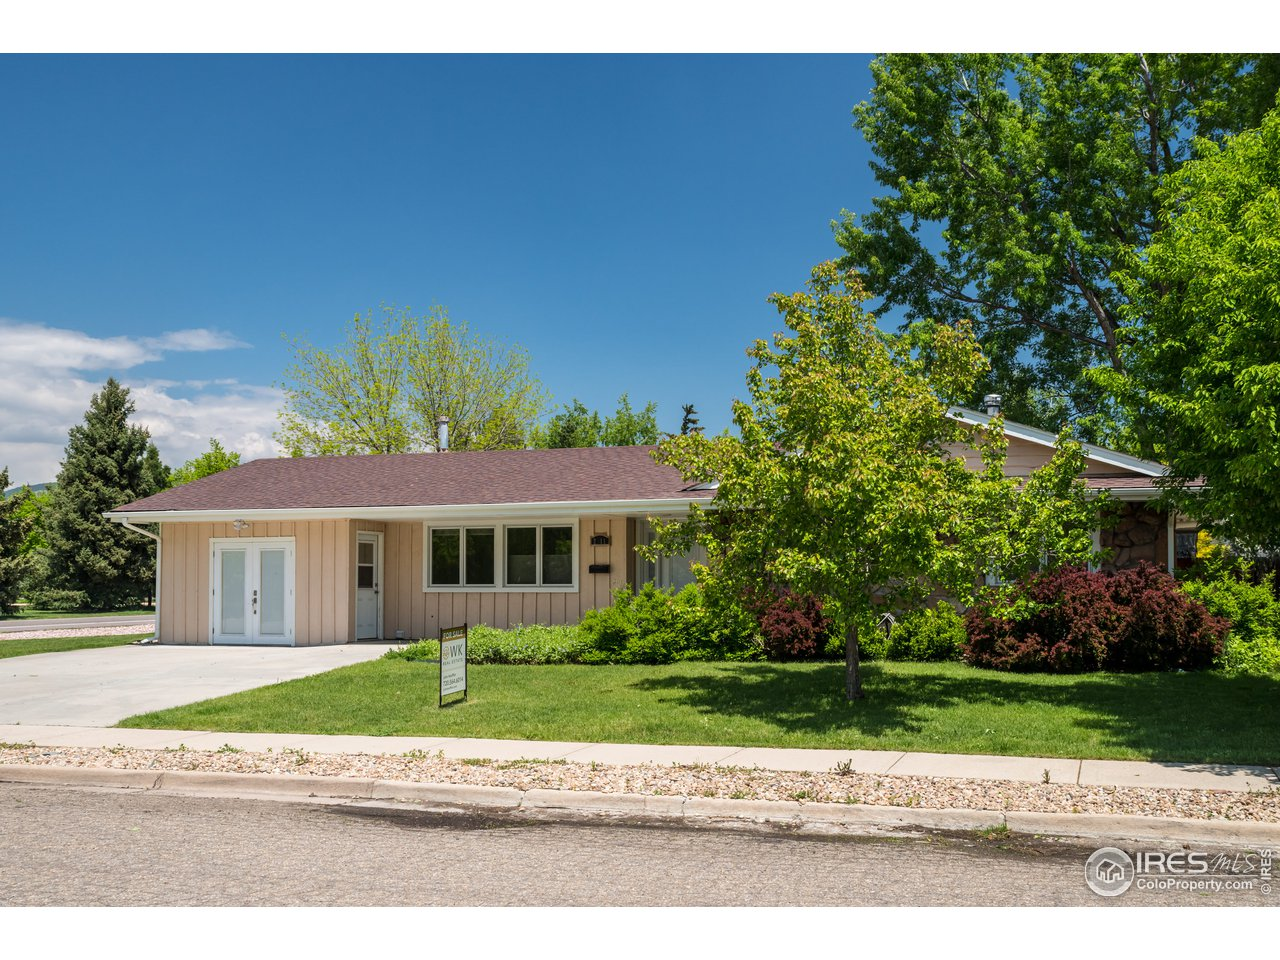 2611 Lloyd Cir, Boulder CO 80304